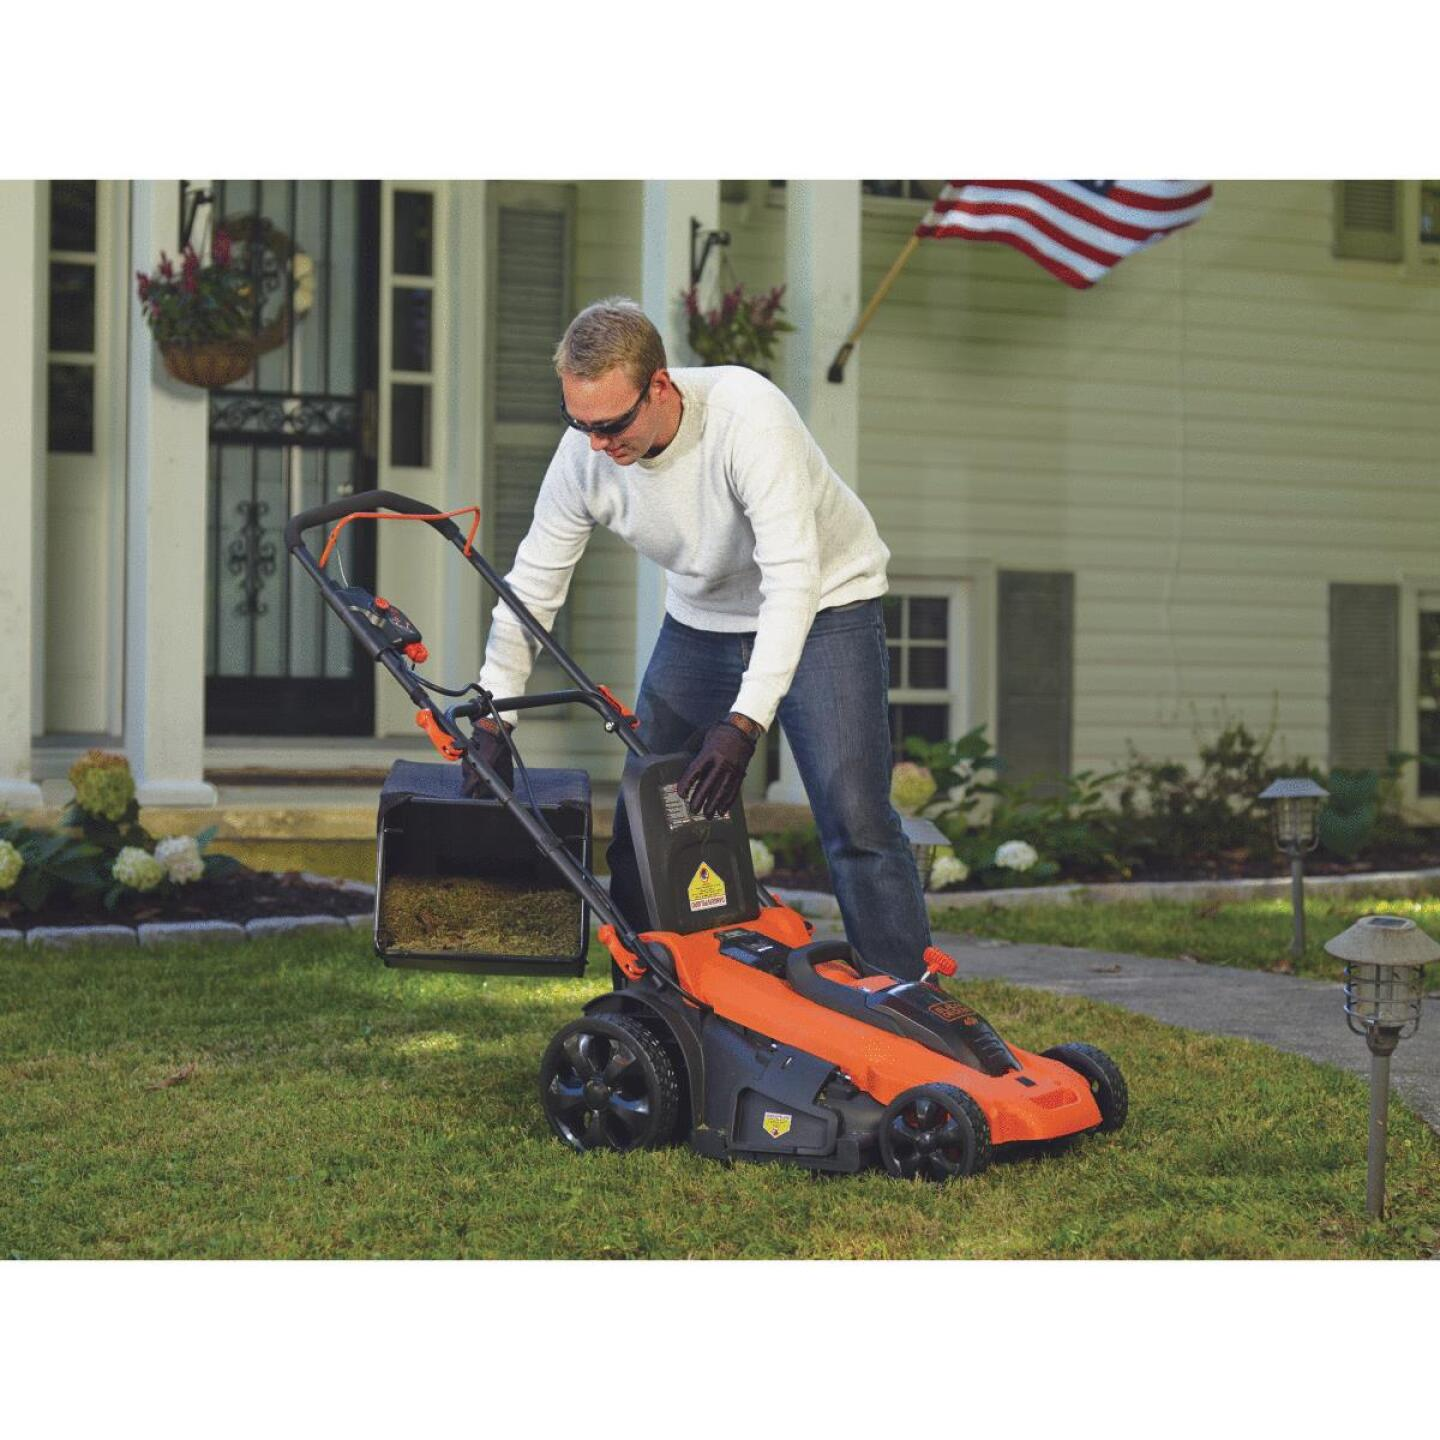 Black & Decker 20 In. 40V MAX Lithium Ion Push Cordless Lawn Mower Image 6